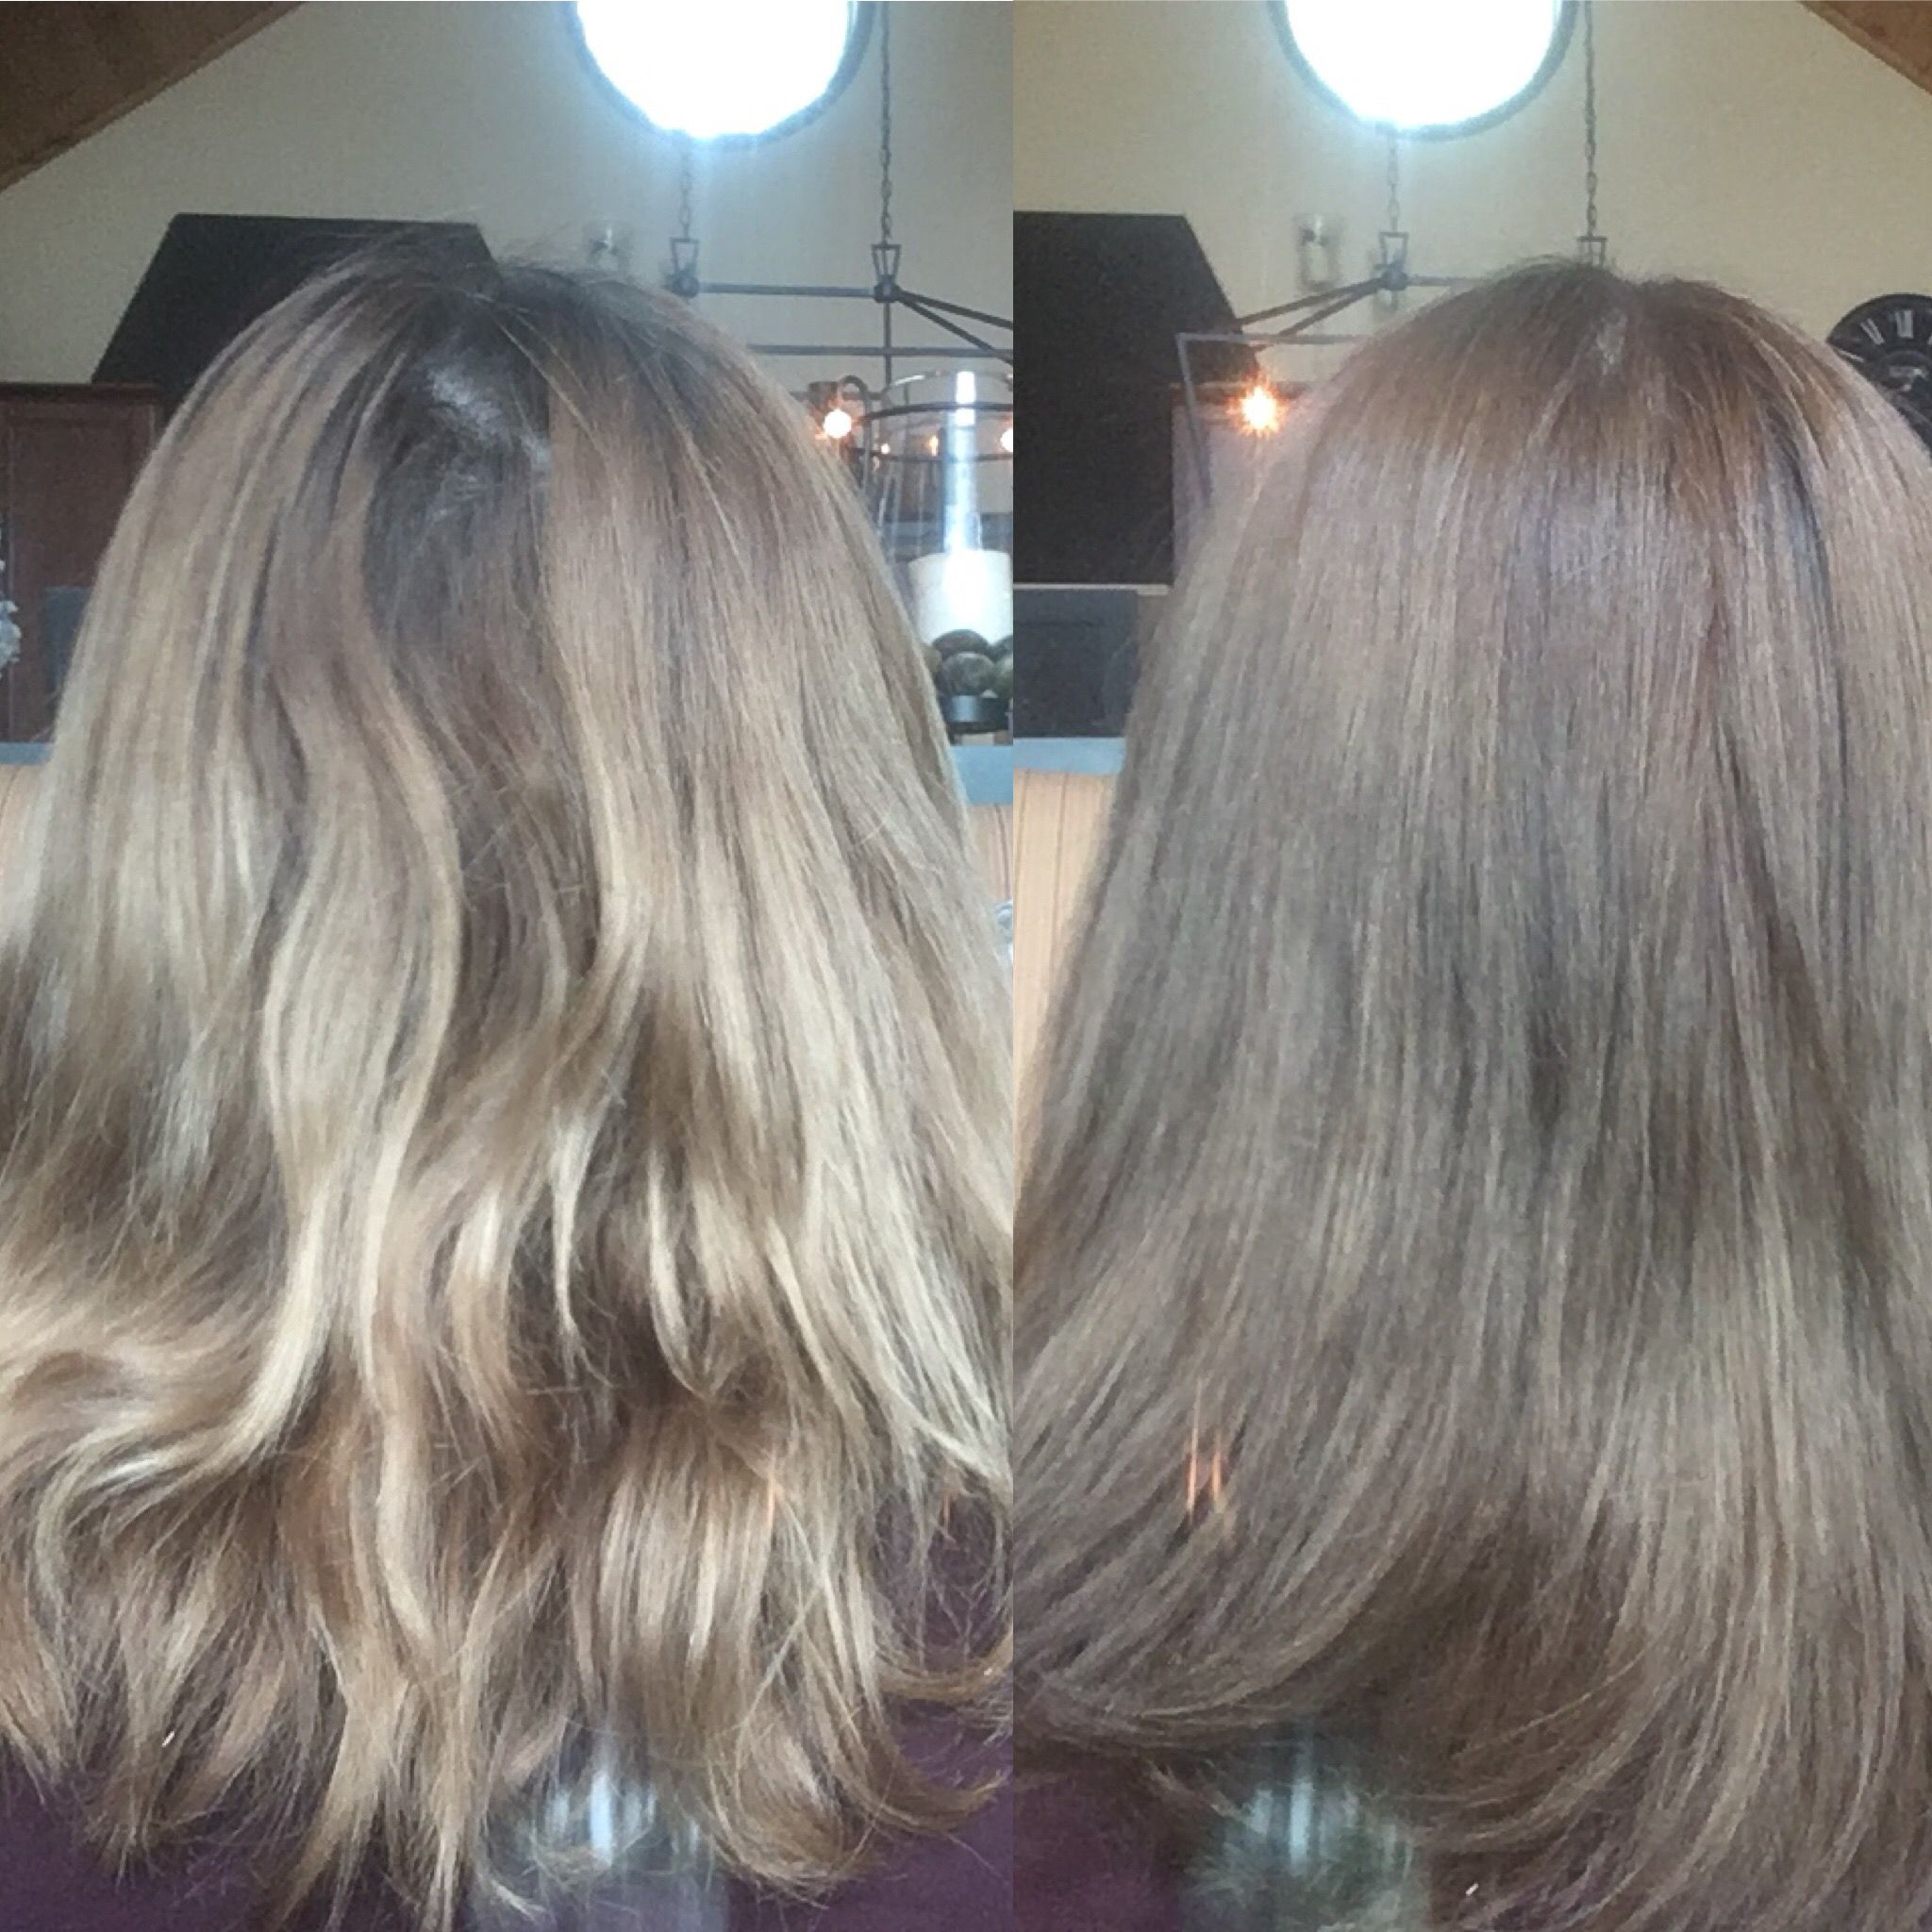 Before And After Wella Colour Gel Permanent Dye 7a672 Medium Smokey